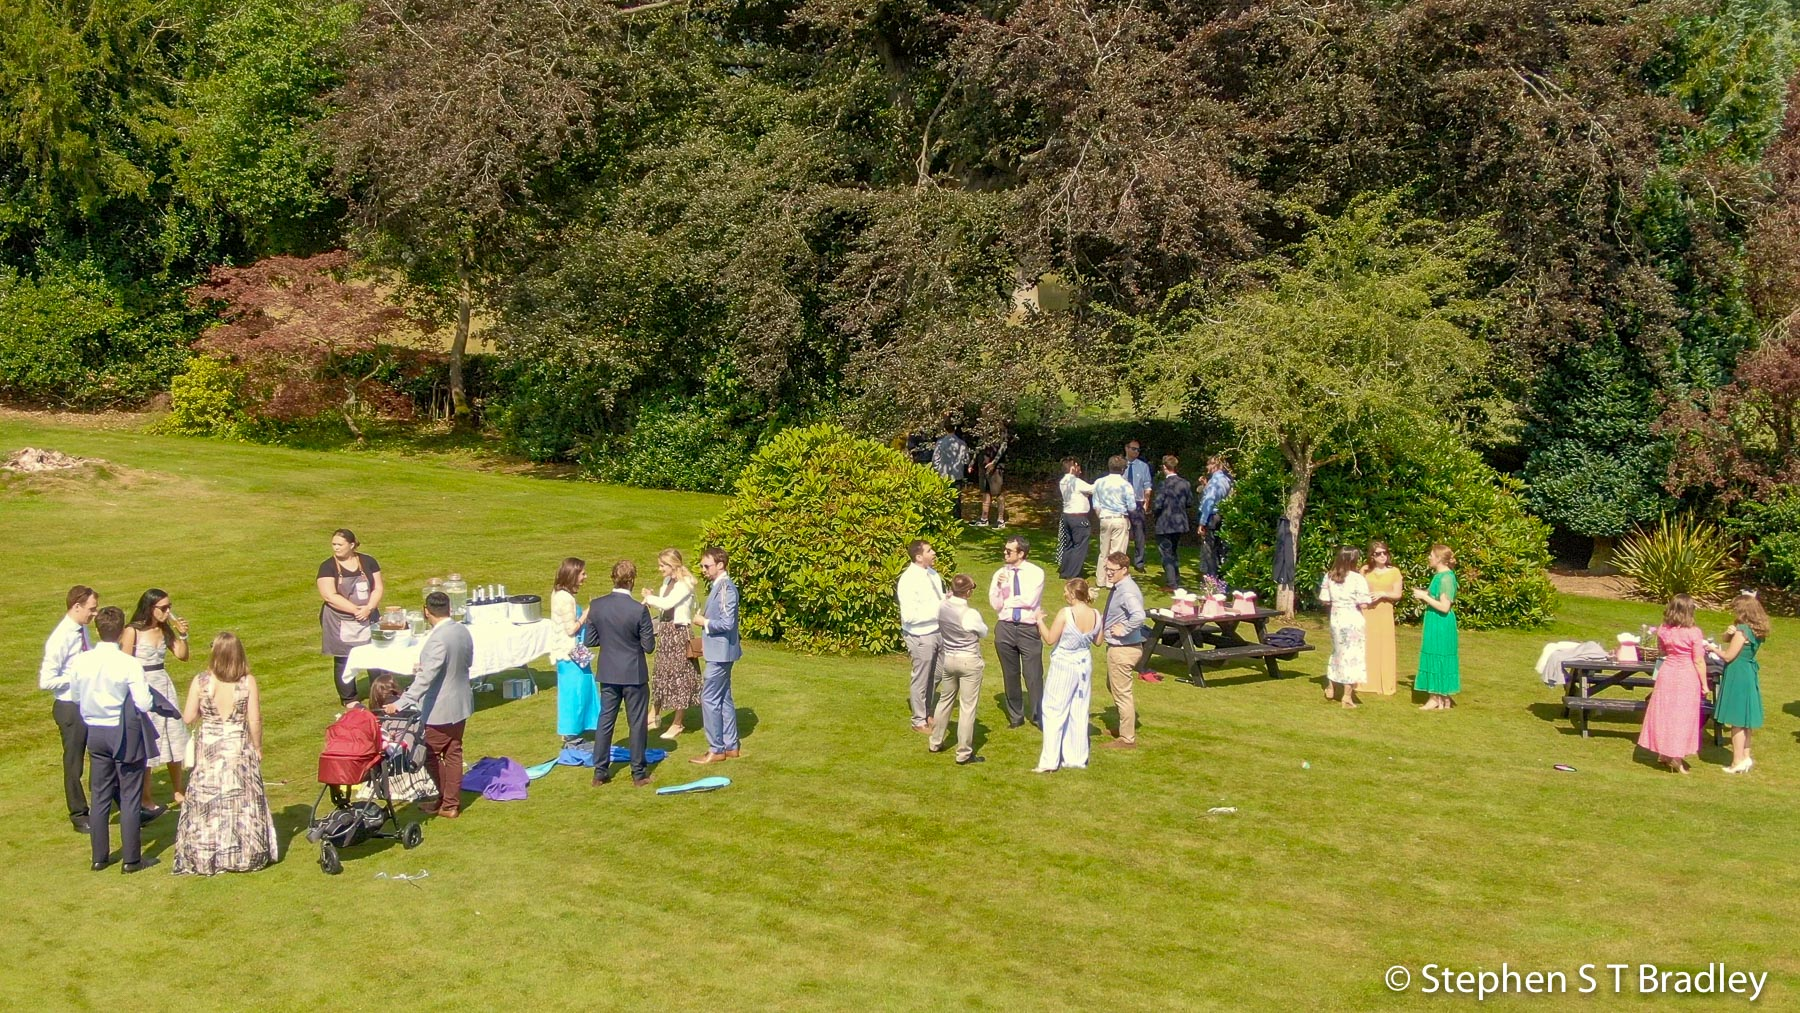 Aerial video of country house wedding at Birdsgrove, Derbyshire, UK, by Stephen S T Bradley - aerial drone photographer and video production services in Dublin and throughout Ireland. Screenshot reference 15